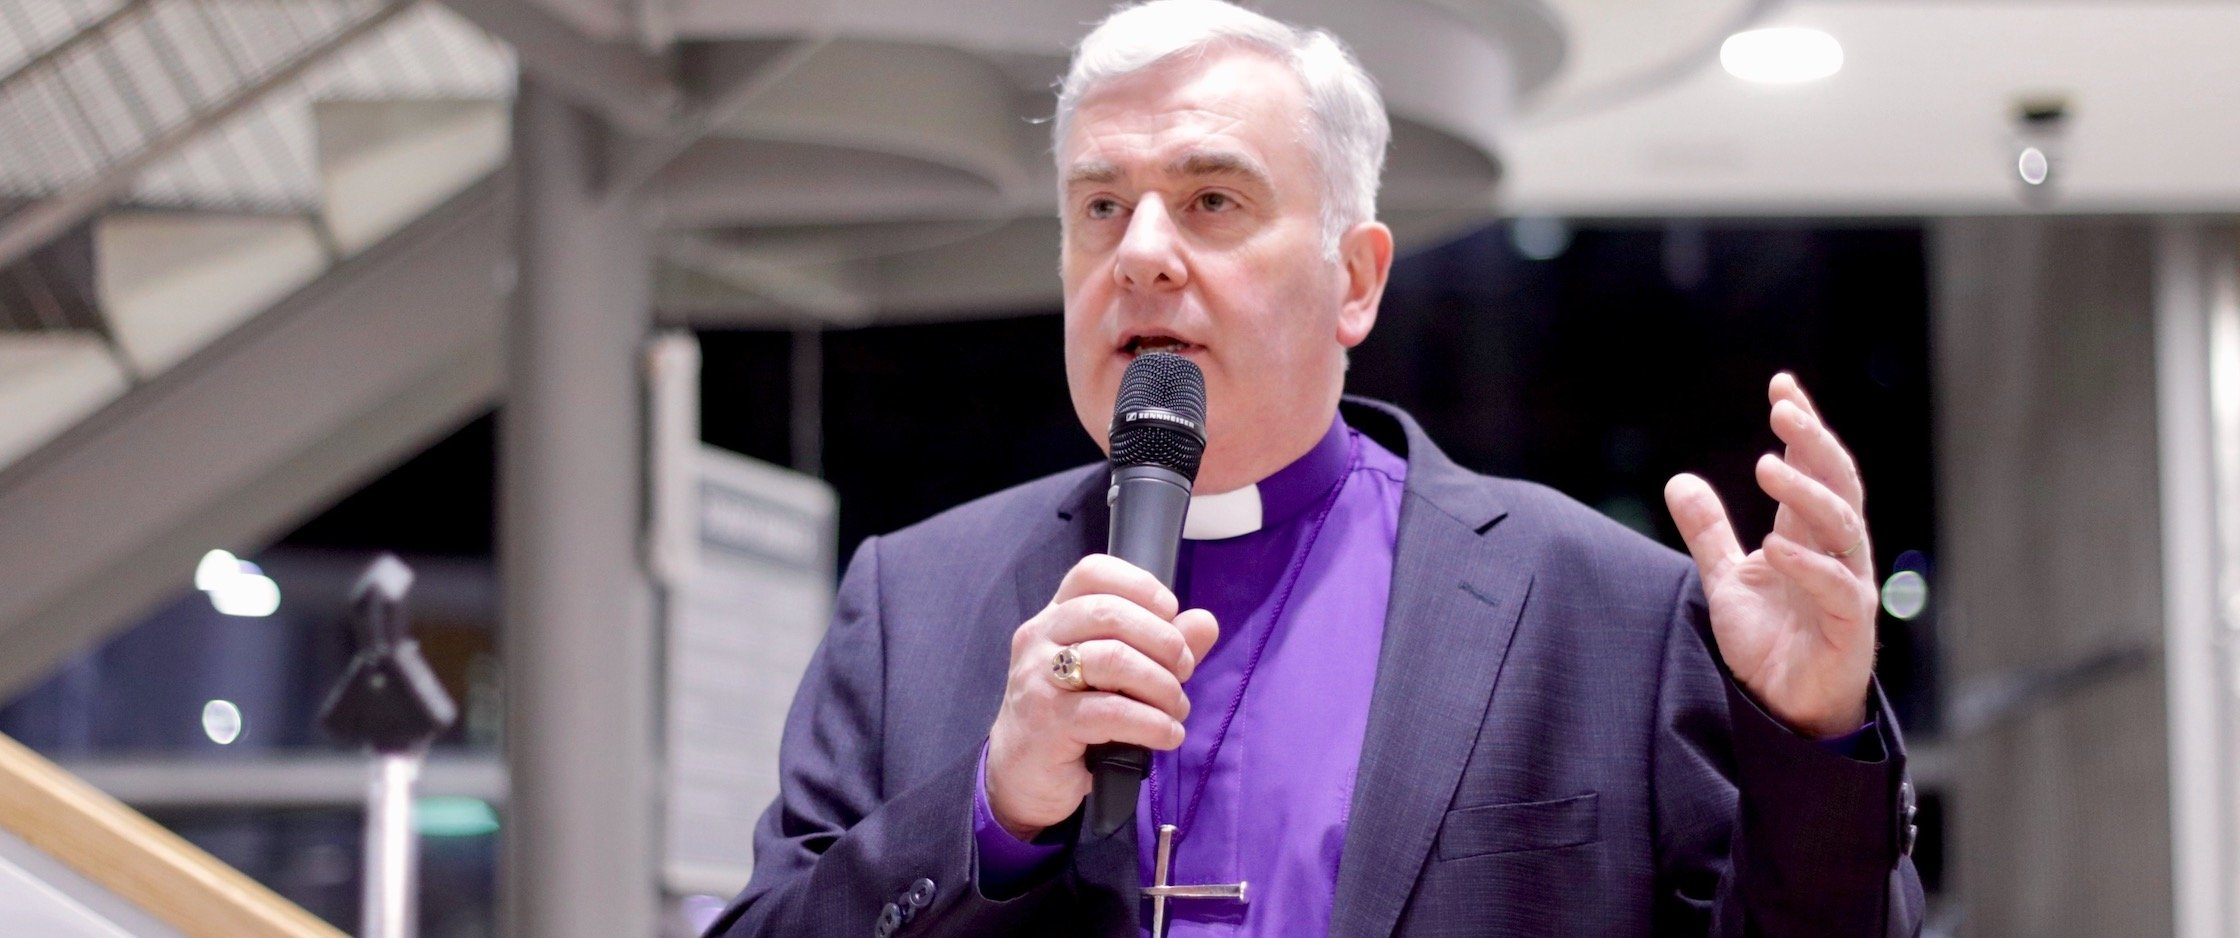 Services of worship to be suspended but we continue to be church – a letter from Bishop David